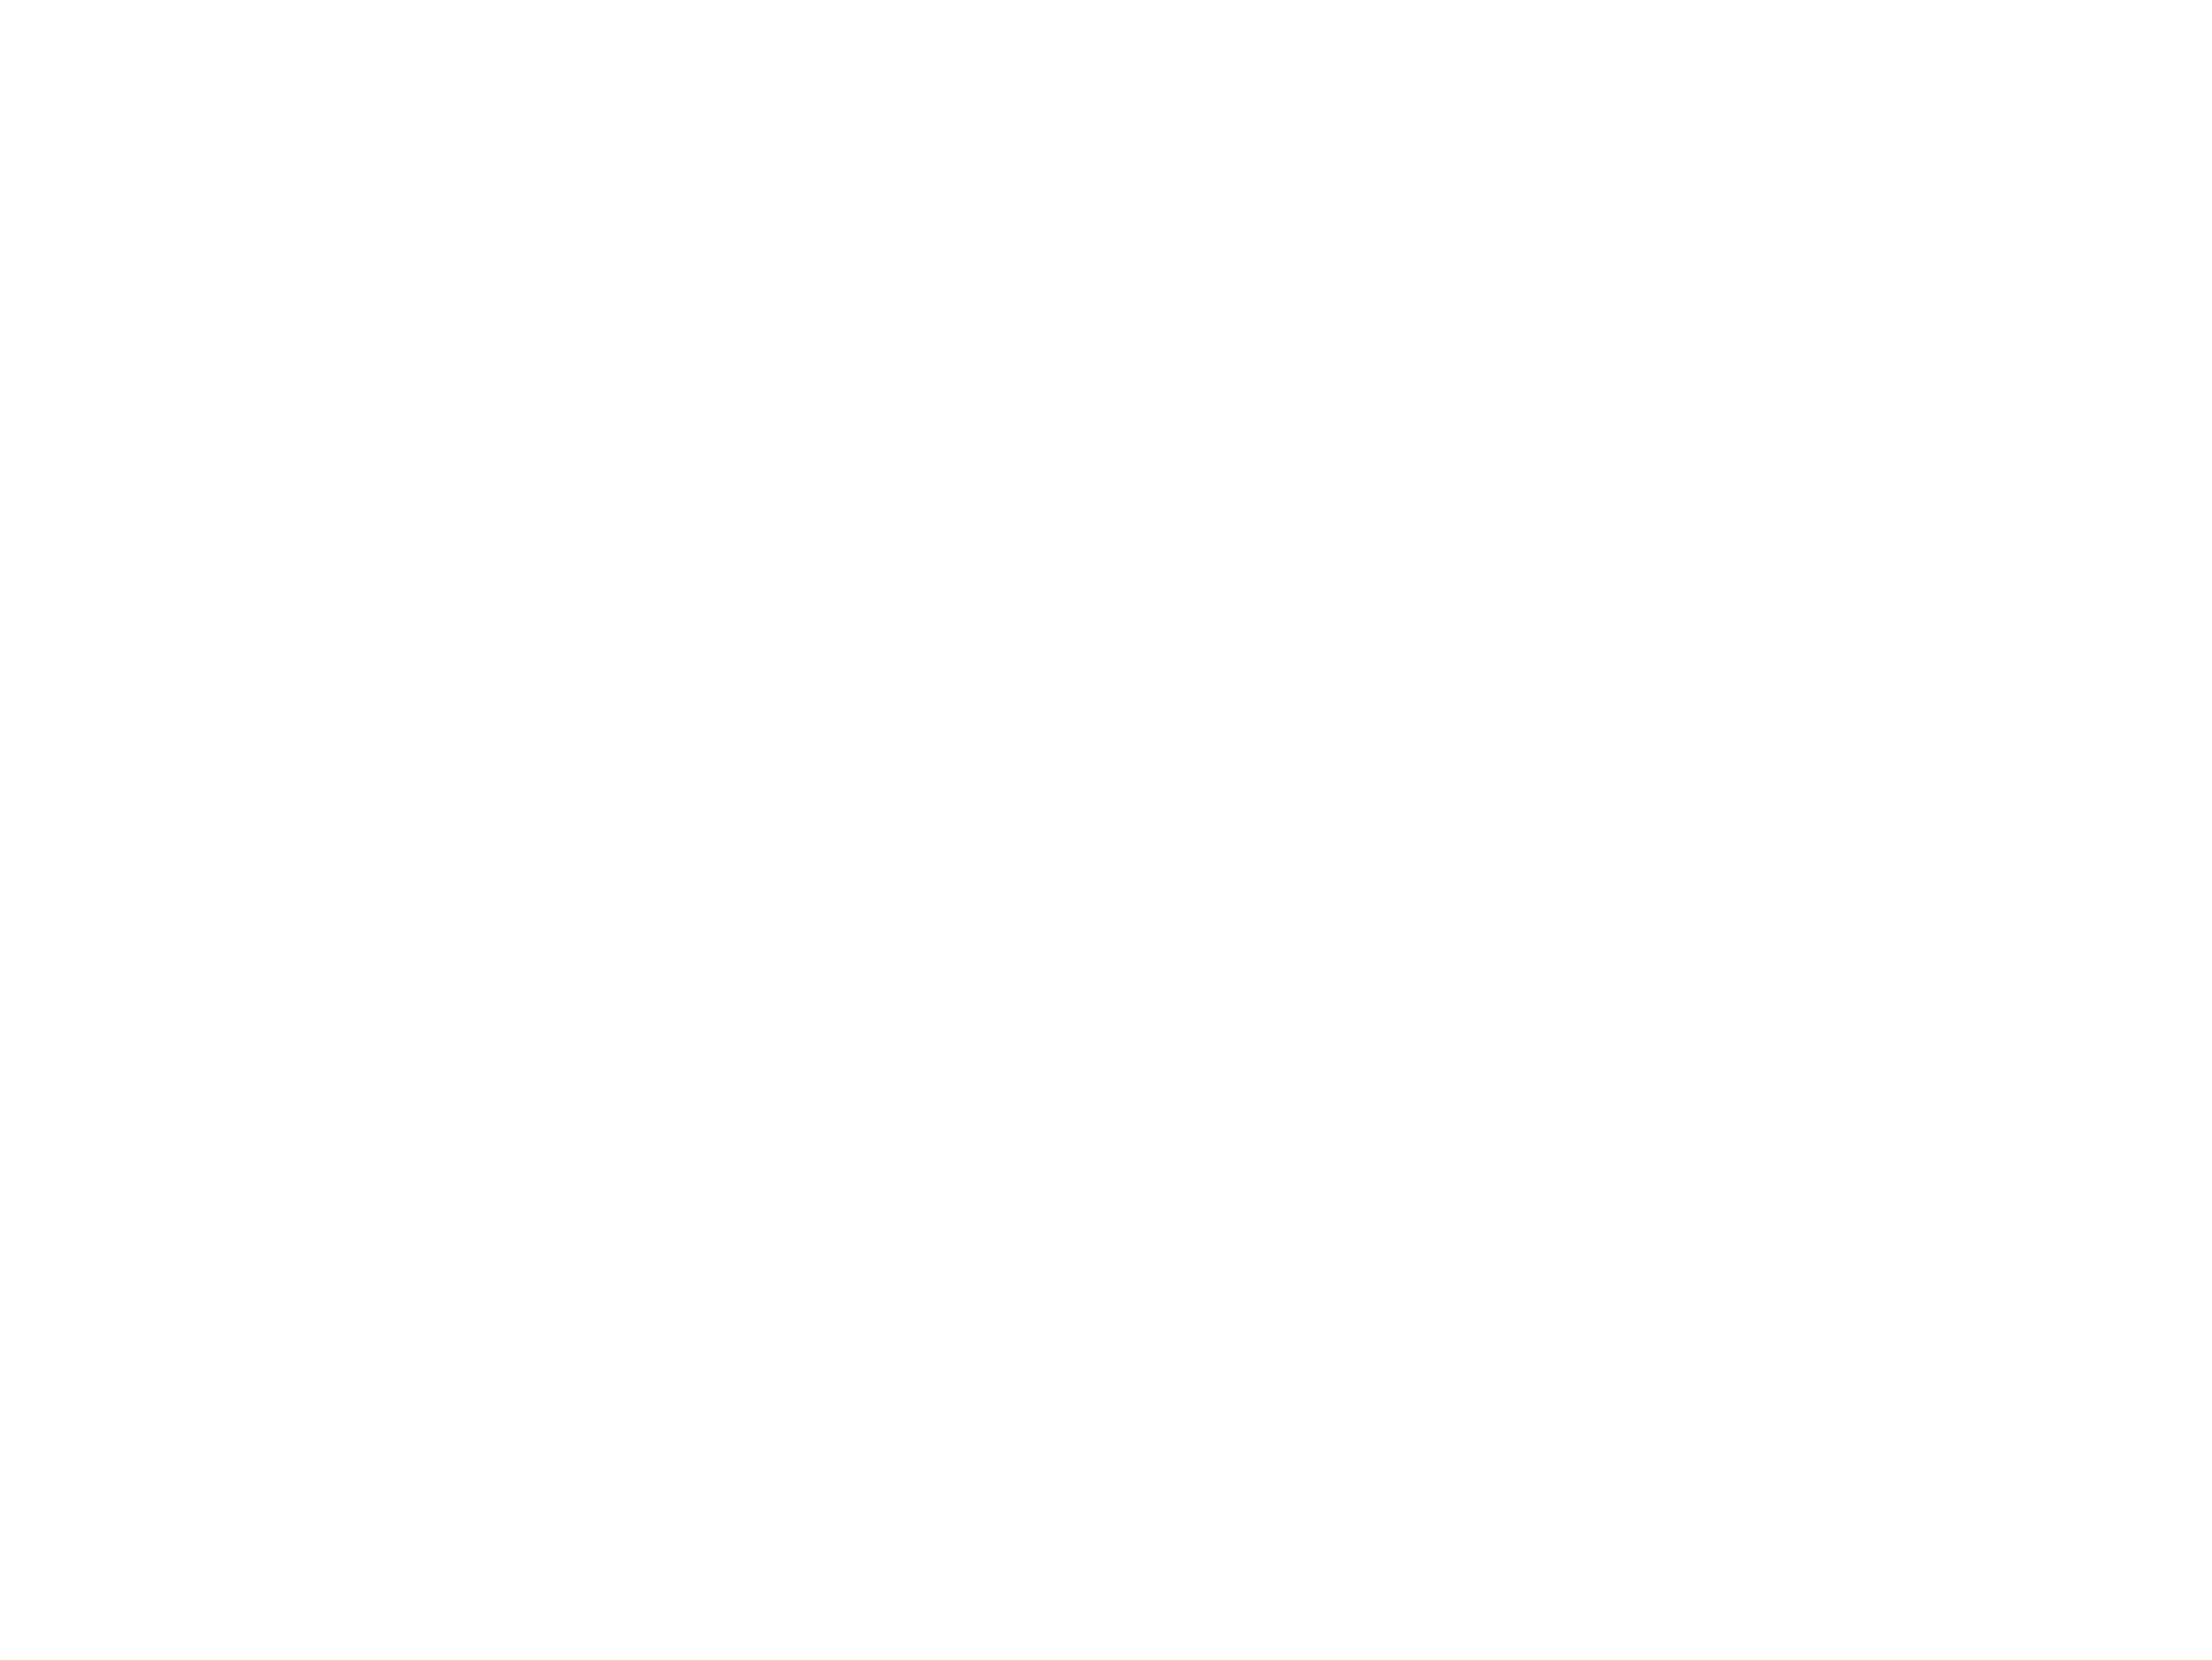 Clipart octopus black and white. Png transparent free images